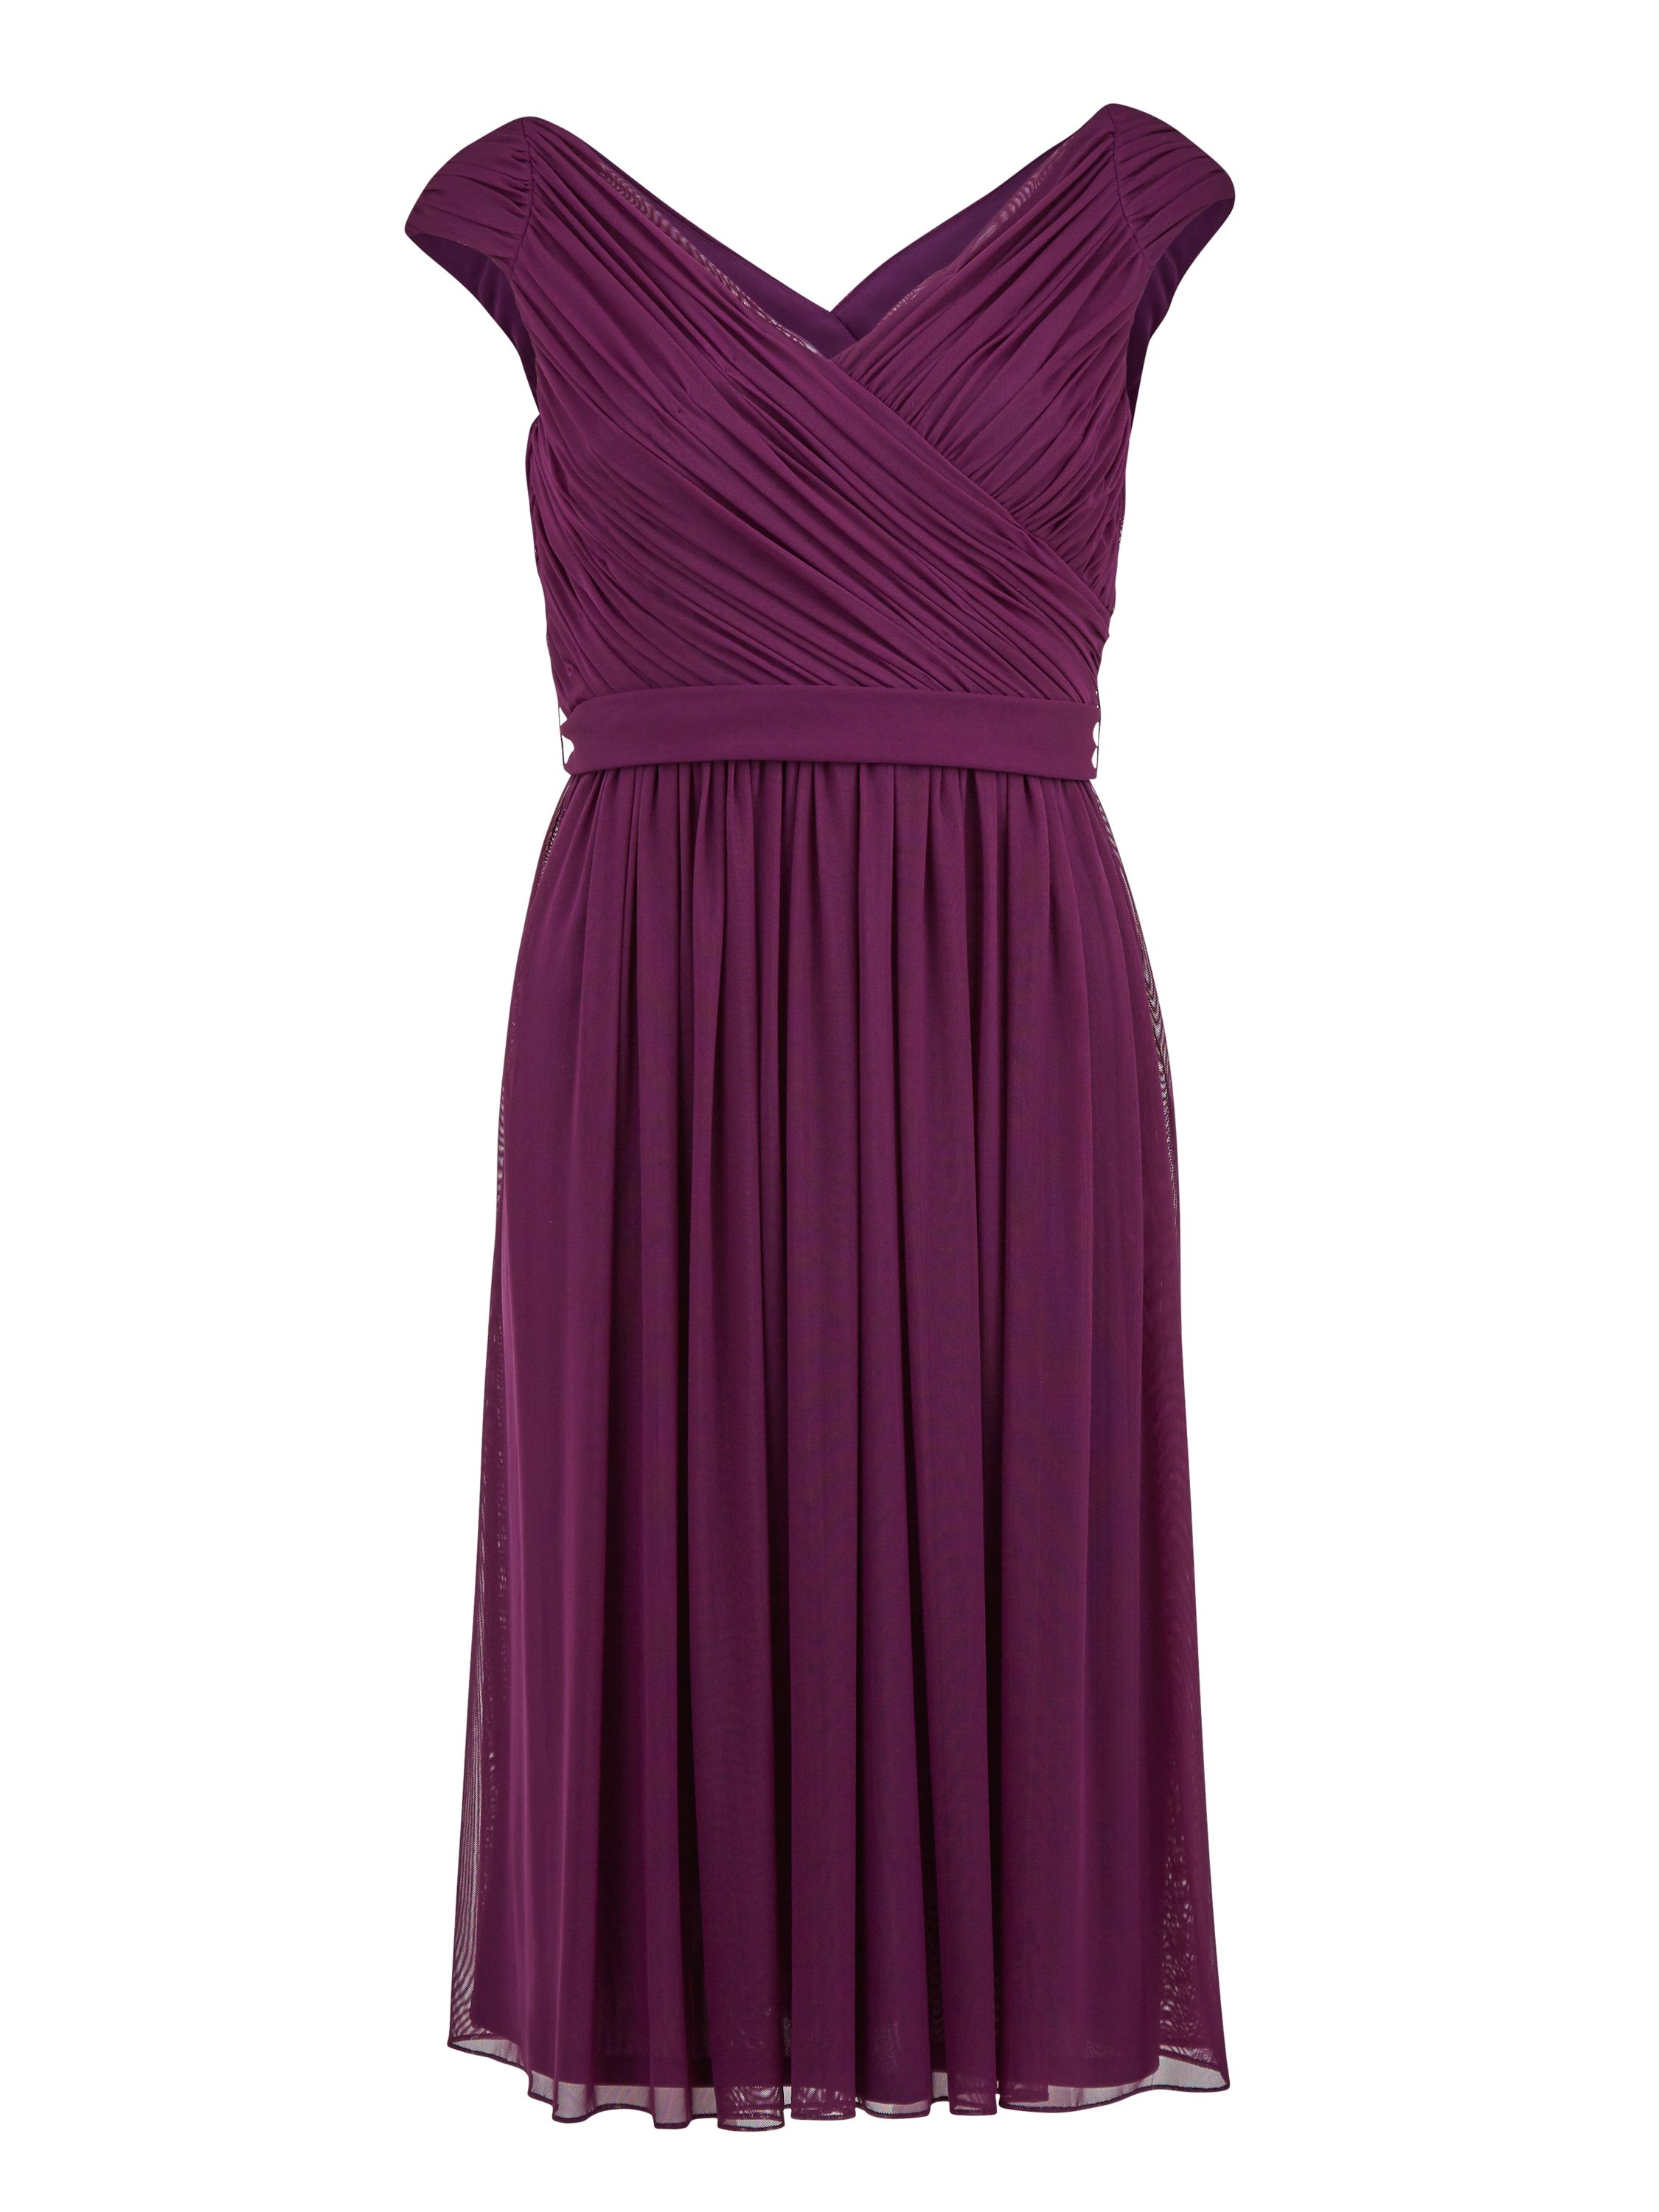 wedding guest dress house of fraser daytime occasion dresses mother of the bride outfits ss 2011